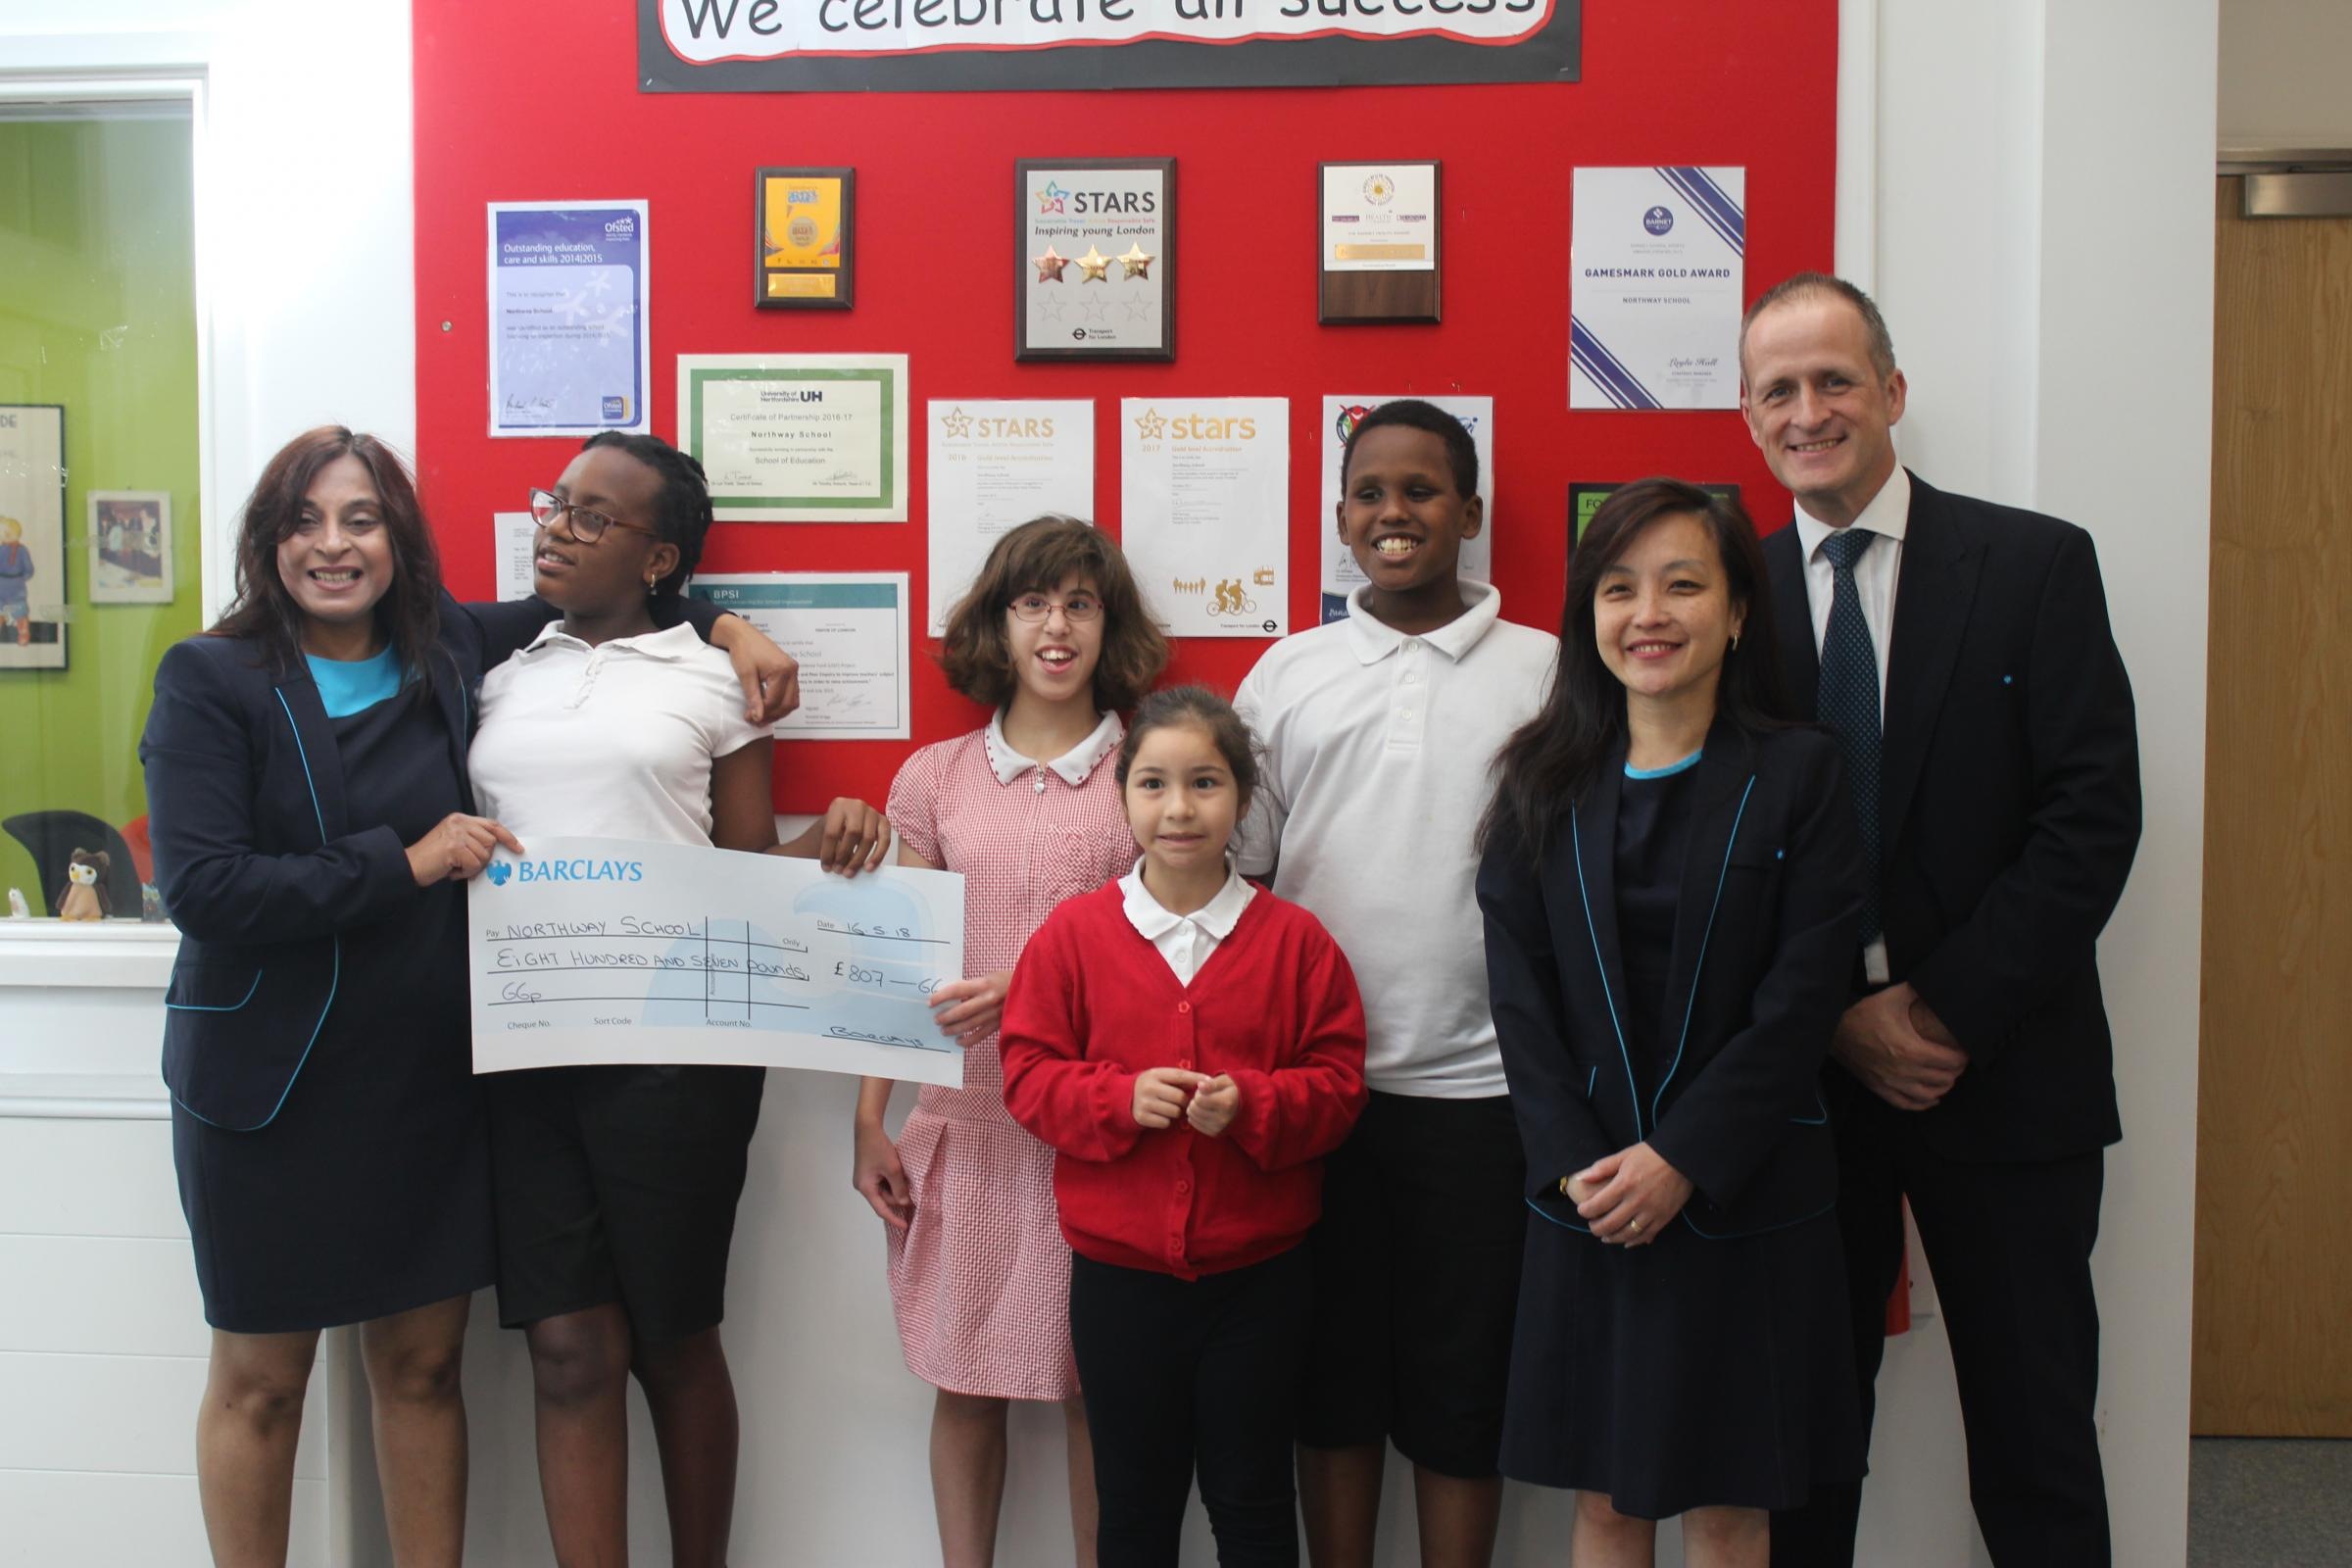 Barclays staff with pupils from Northway School